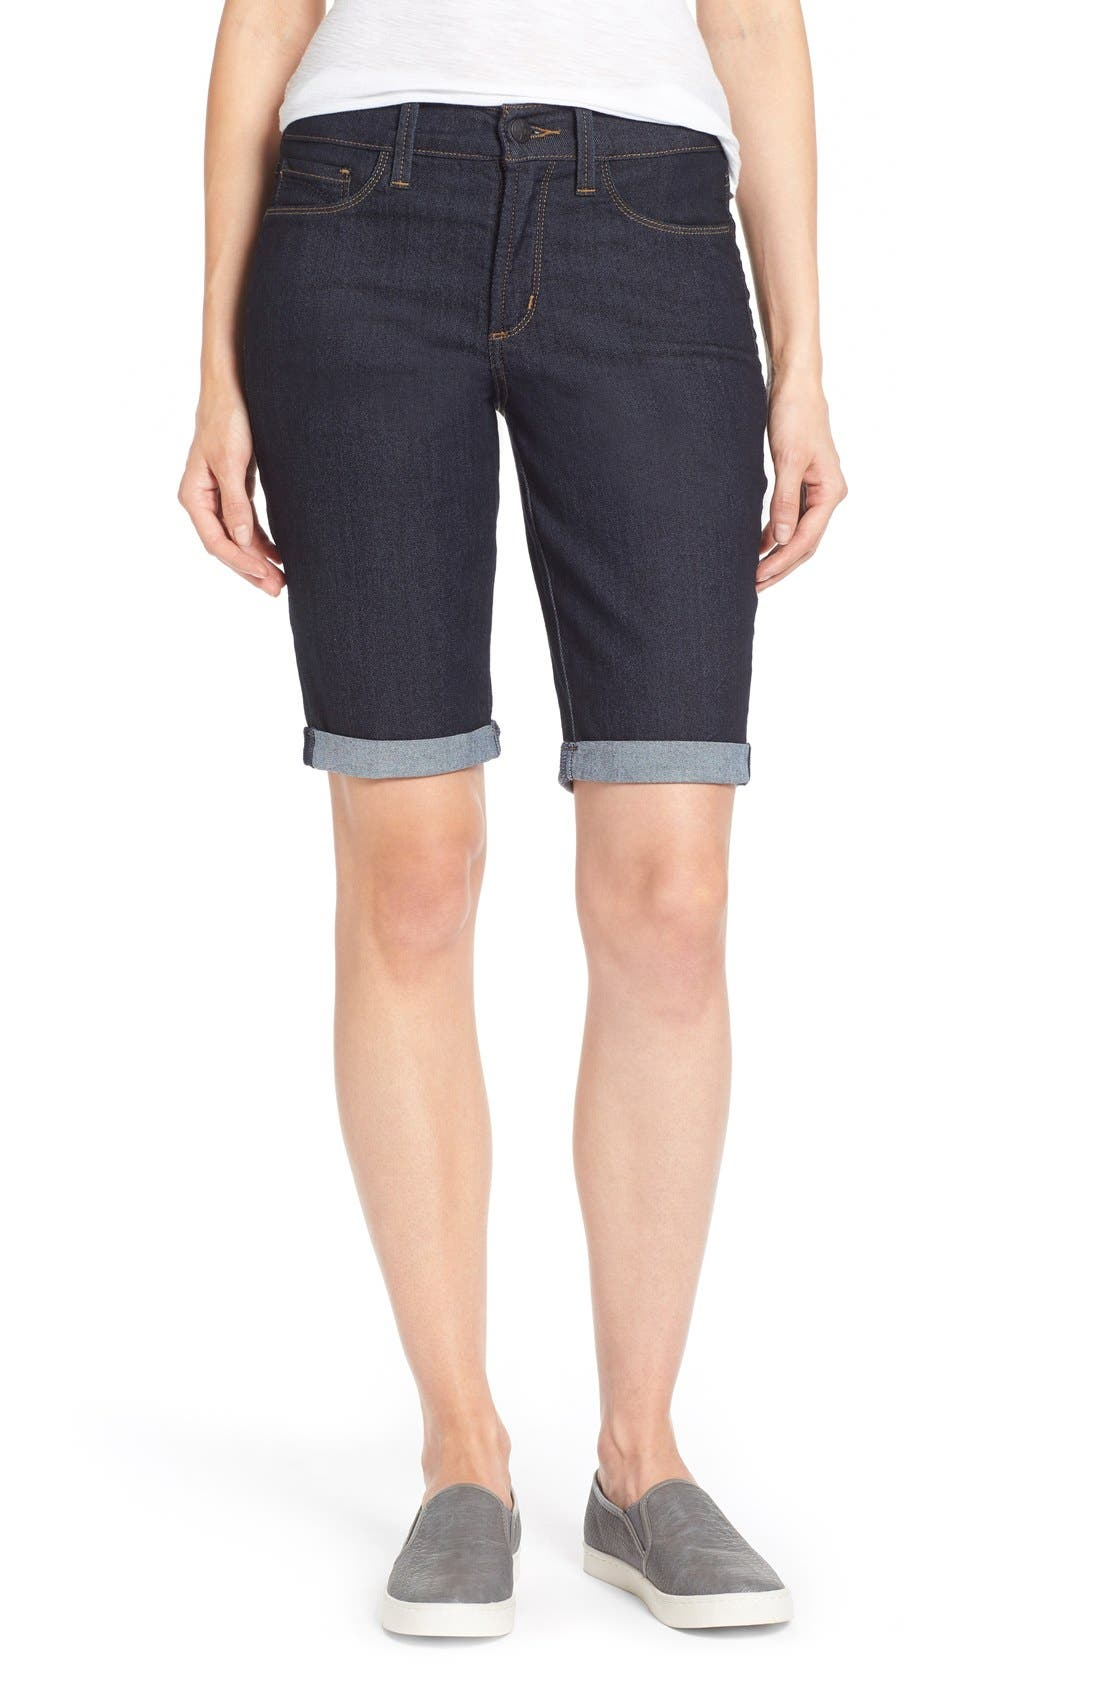 Main Image - NYDJ 'Briella' Stretch Roll Cuff Denim Shorts (Regular & Petite)